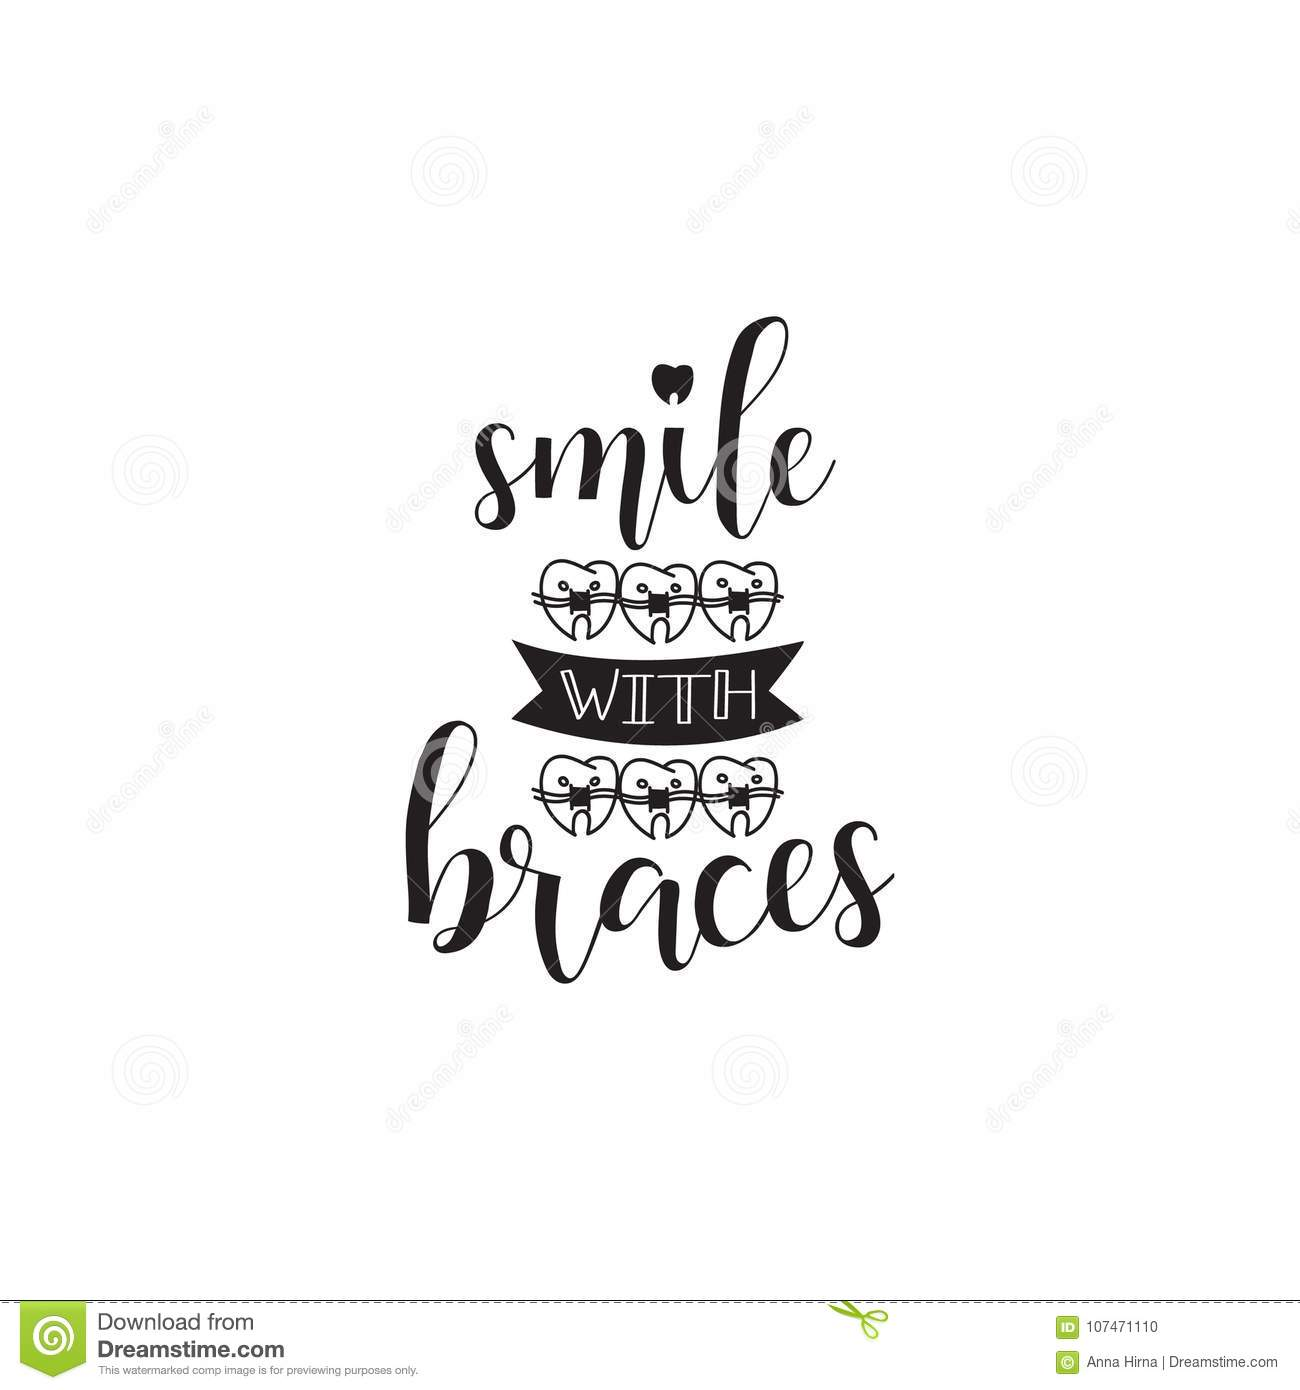 Braces Quotes: Smile With Braces. Lettering. Dental Care Motivational